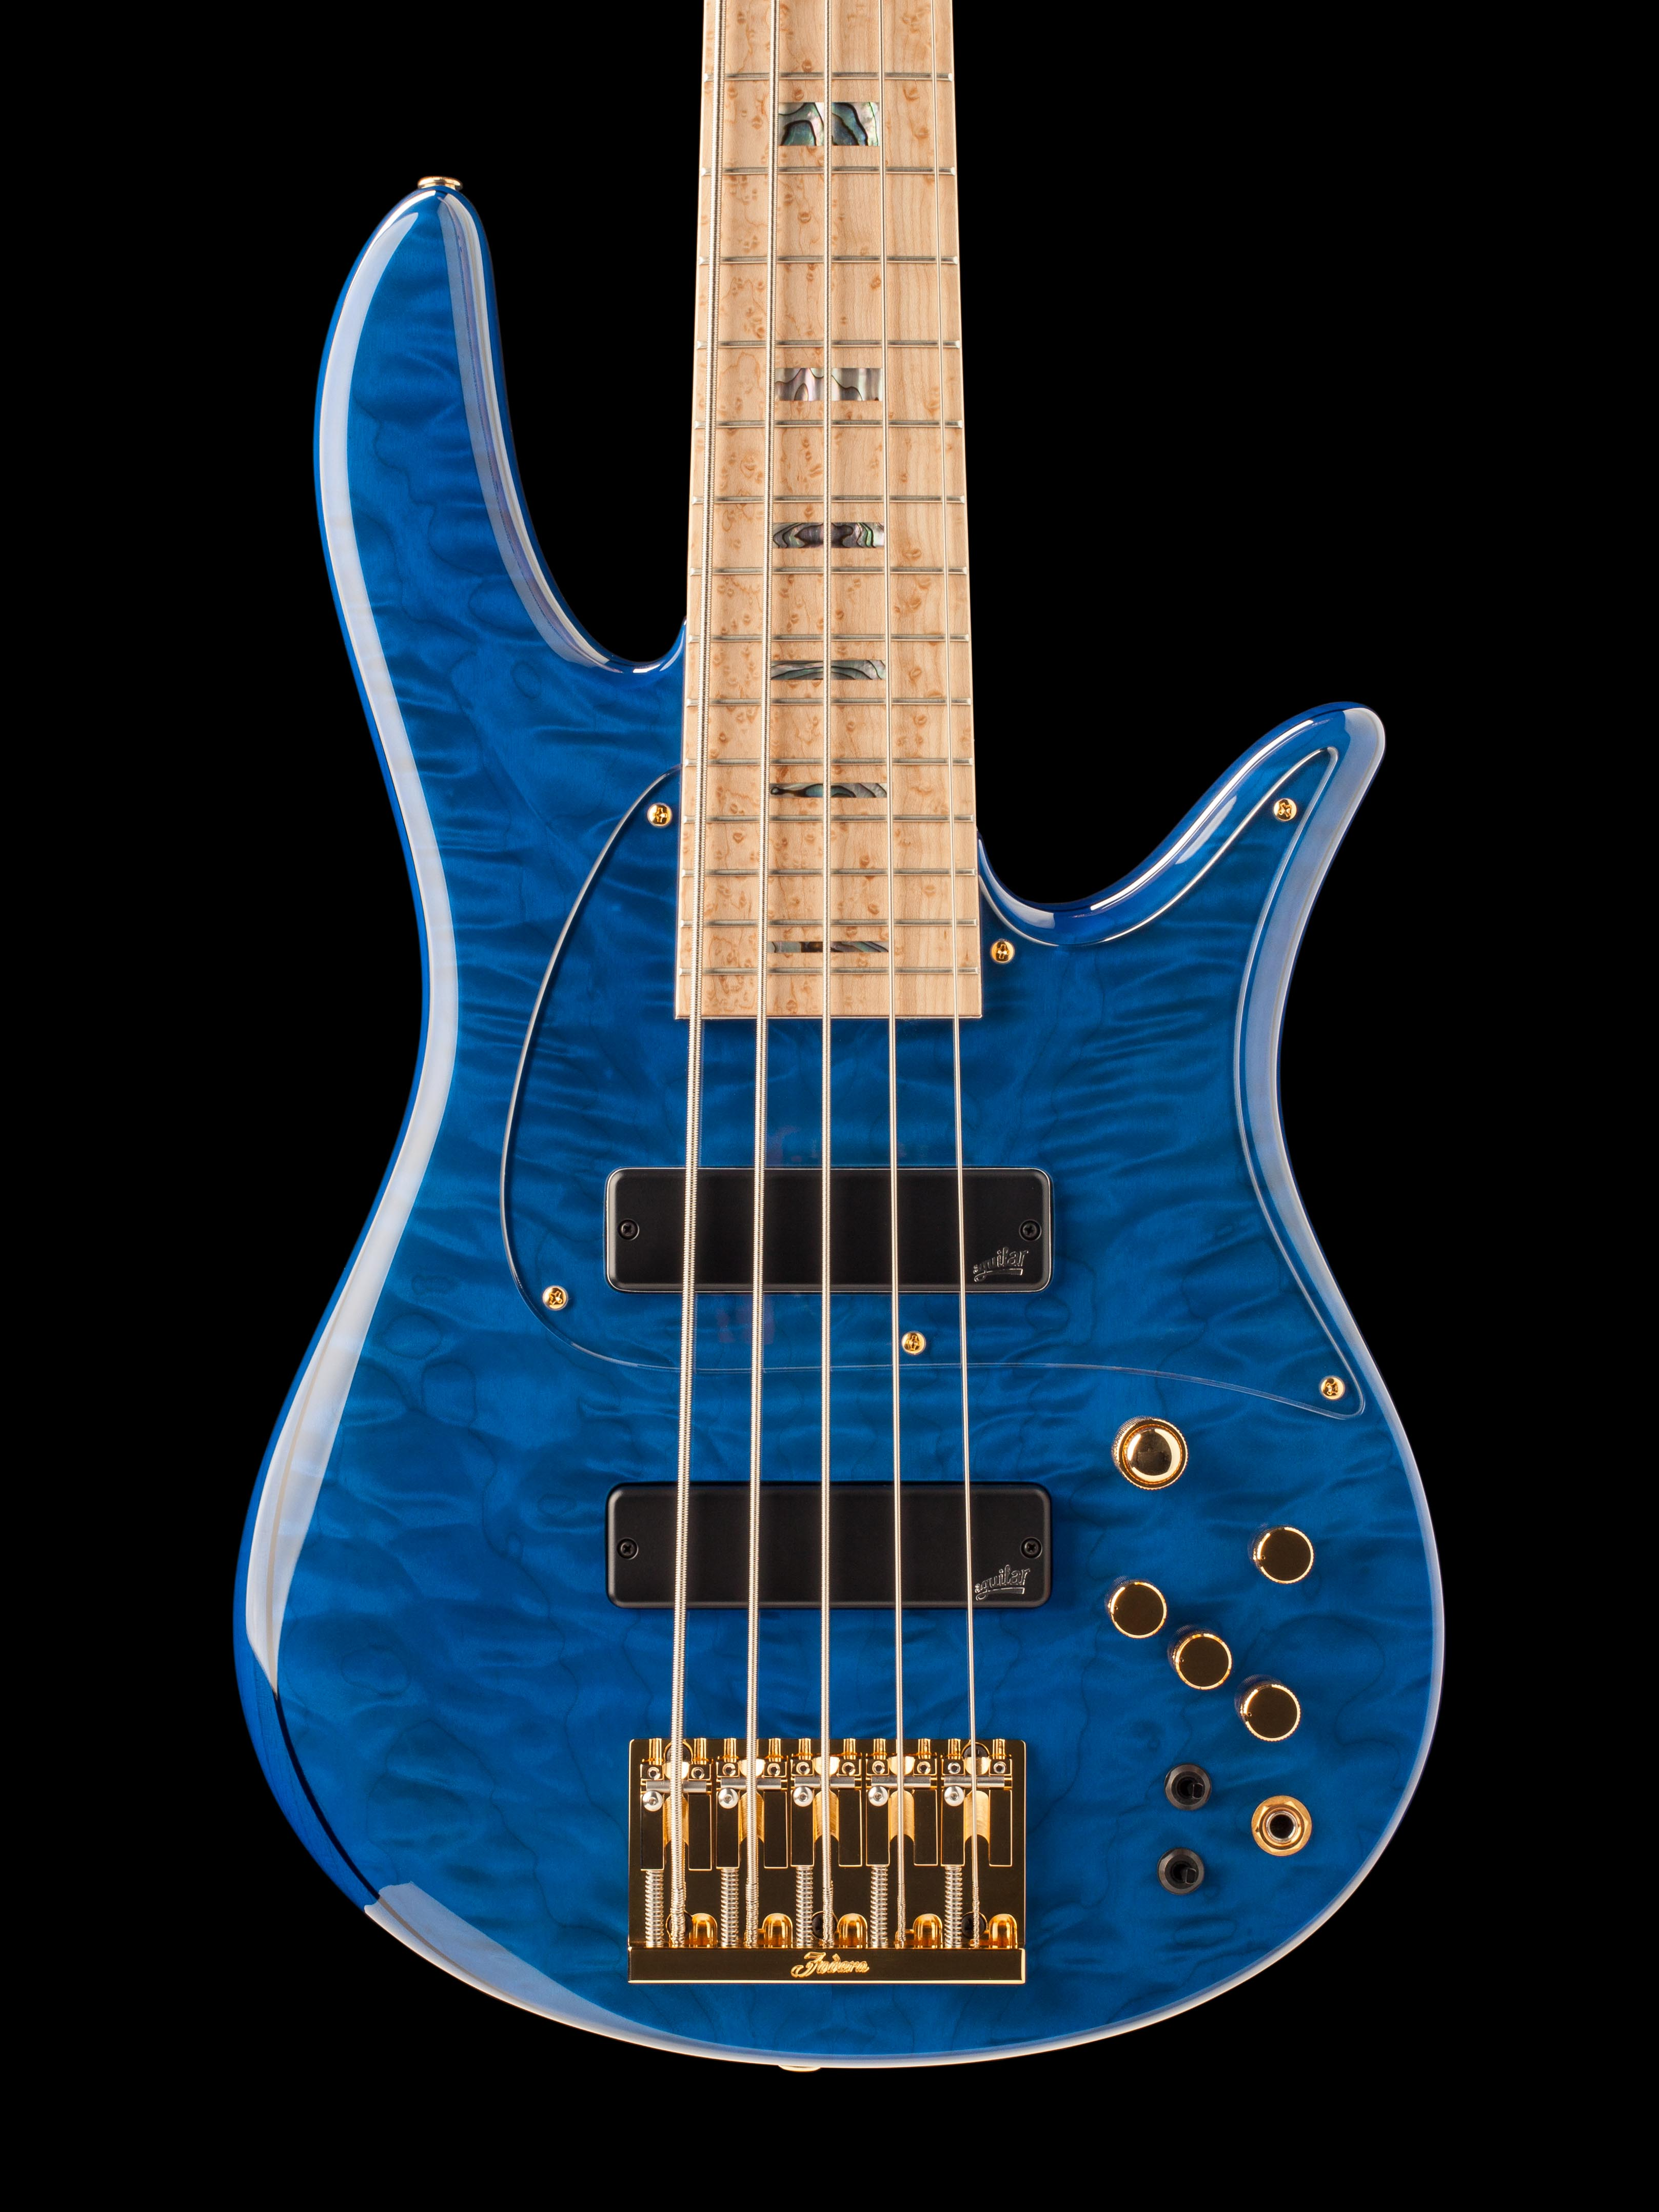 Five-String Blue-Bodied Guitar